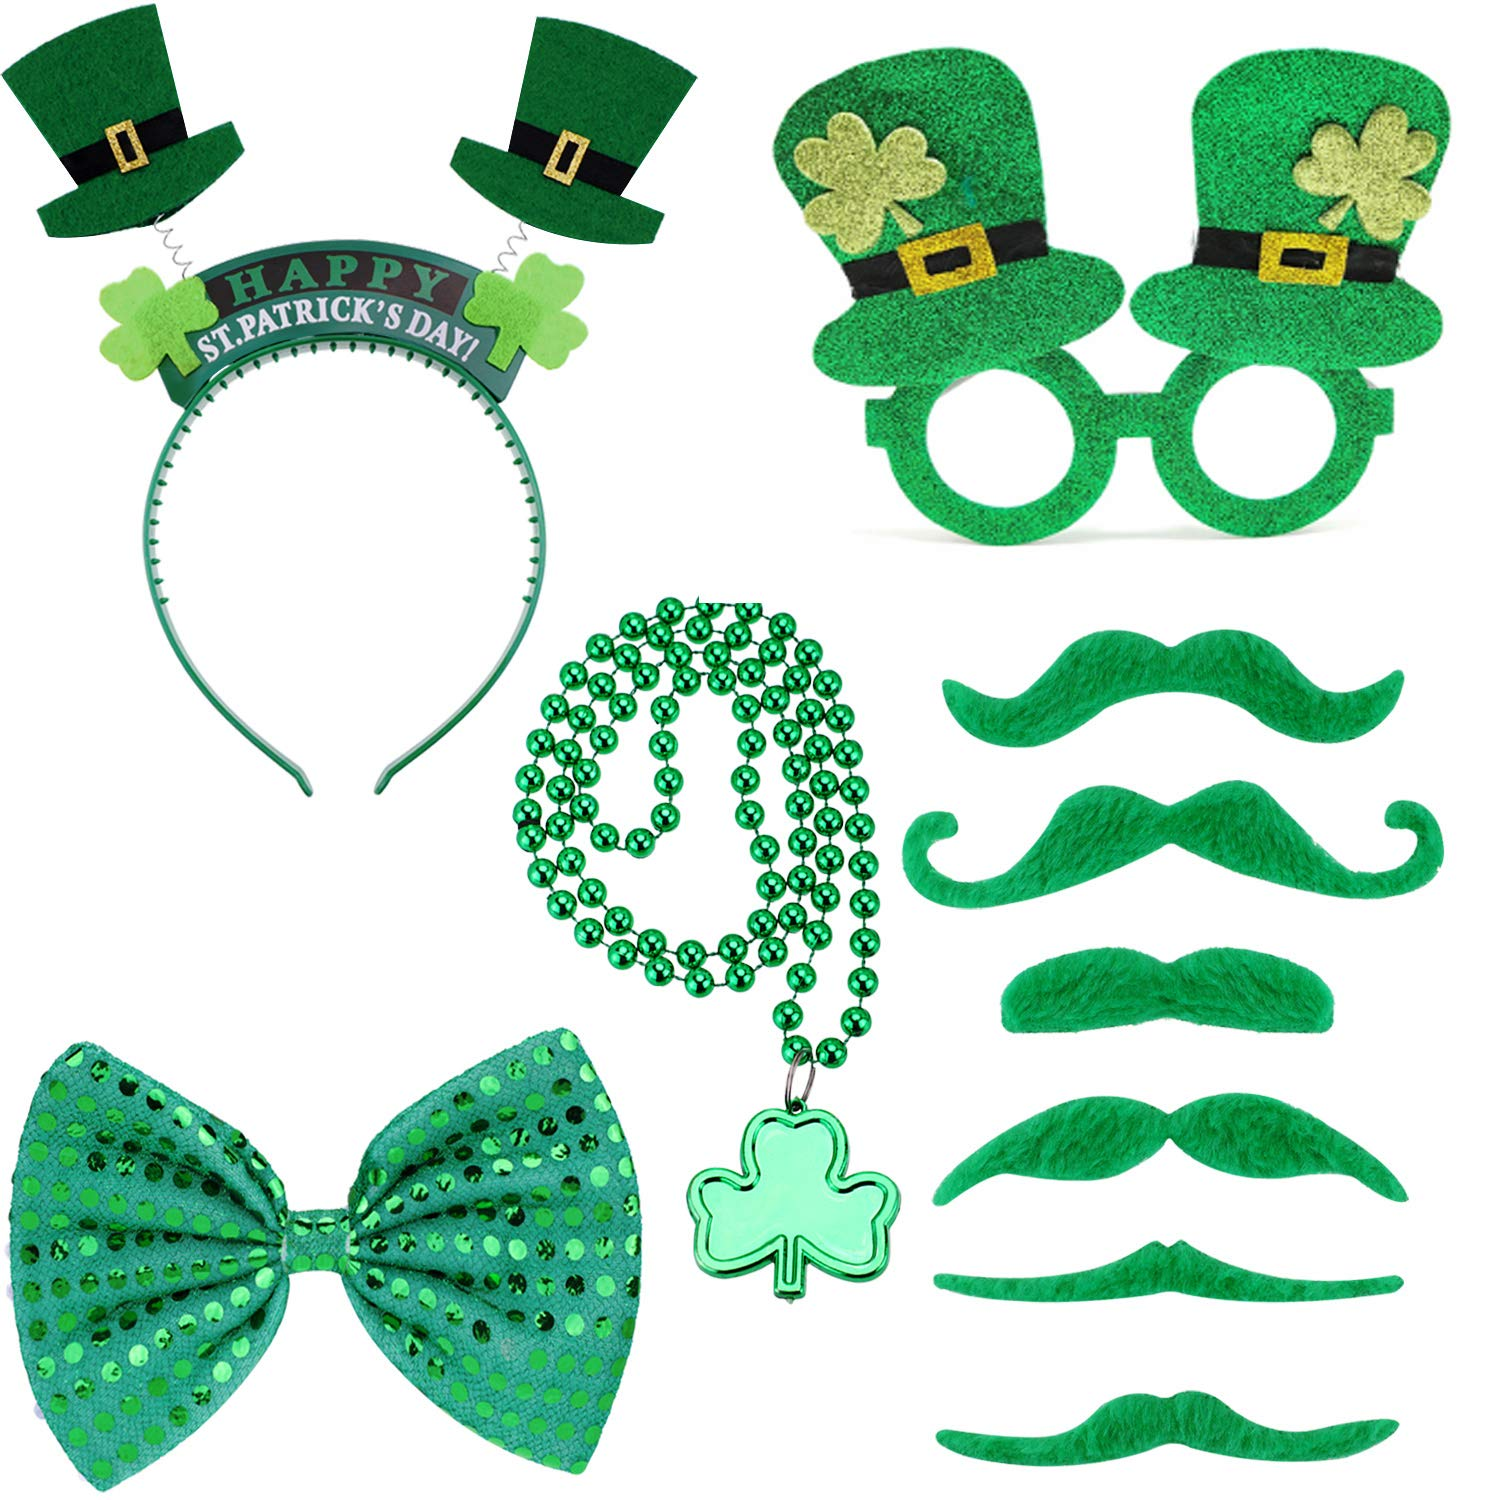 Party Supplies Include Shamrock Glasses St Patrick s Day Accessories Set for Parade Great Party Favors Gifts for Kids and Adults 10pcs Sequined Bow Headband and 4 Different Necklaces